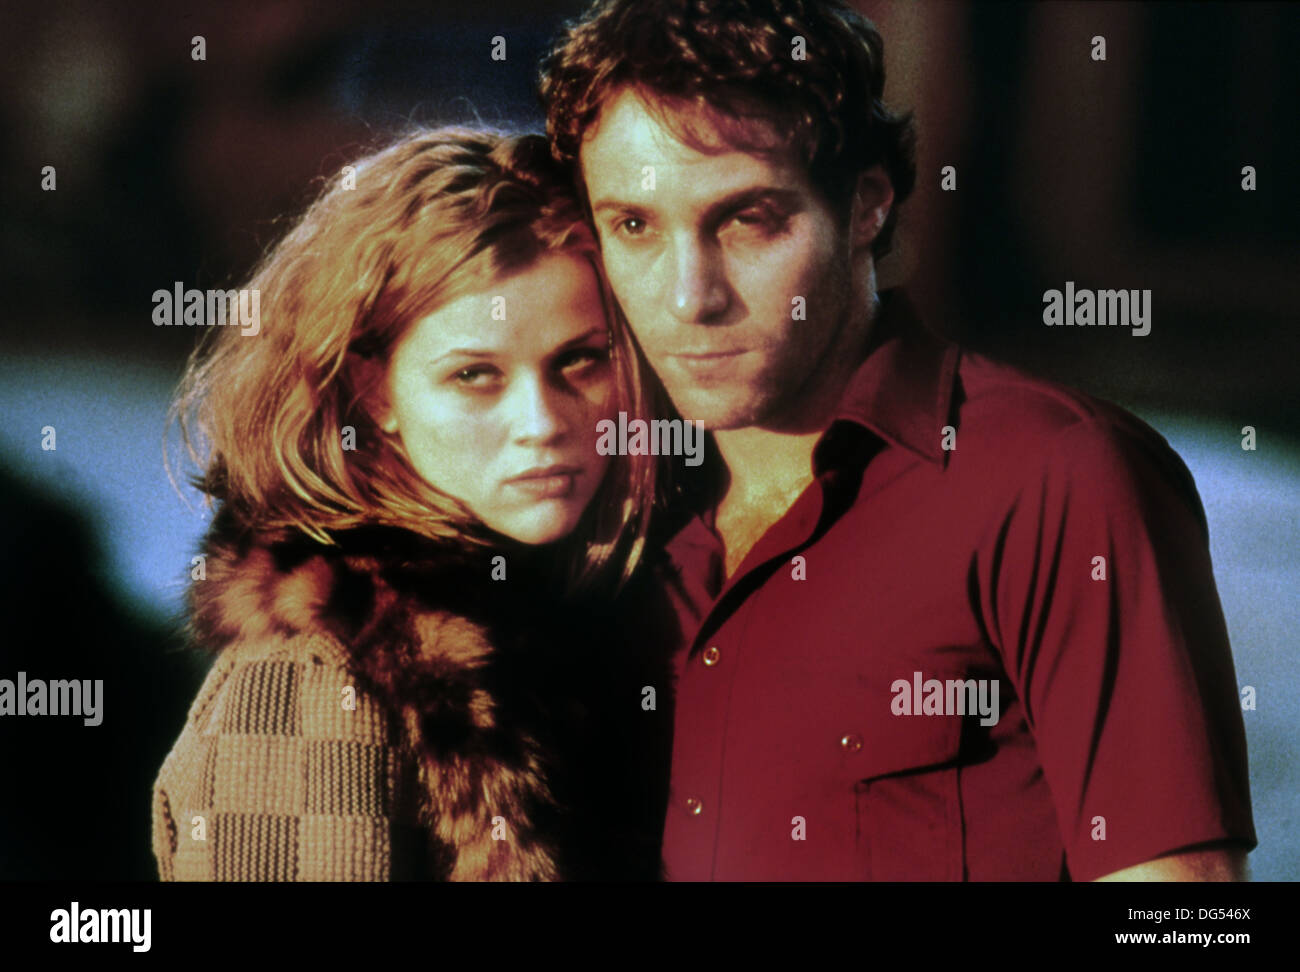 BEST LAID PLANS 1999) REESE WITHERSPOON, ALESSANDRO NIVOLA, MIKE BARKER DIR) BLPL 004 MOVIESTORE COLLECTION LTD - Stock Image